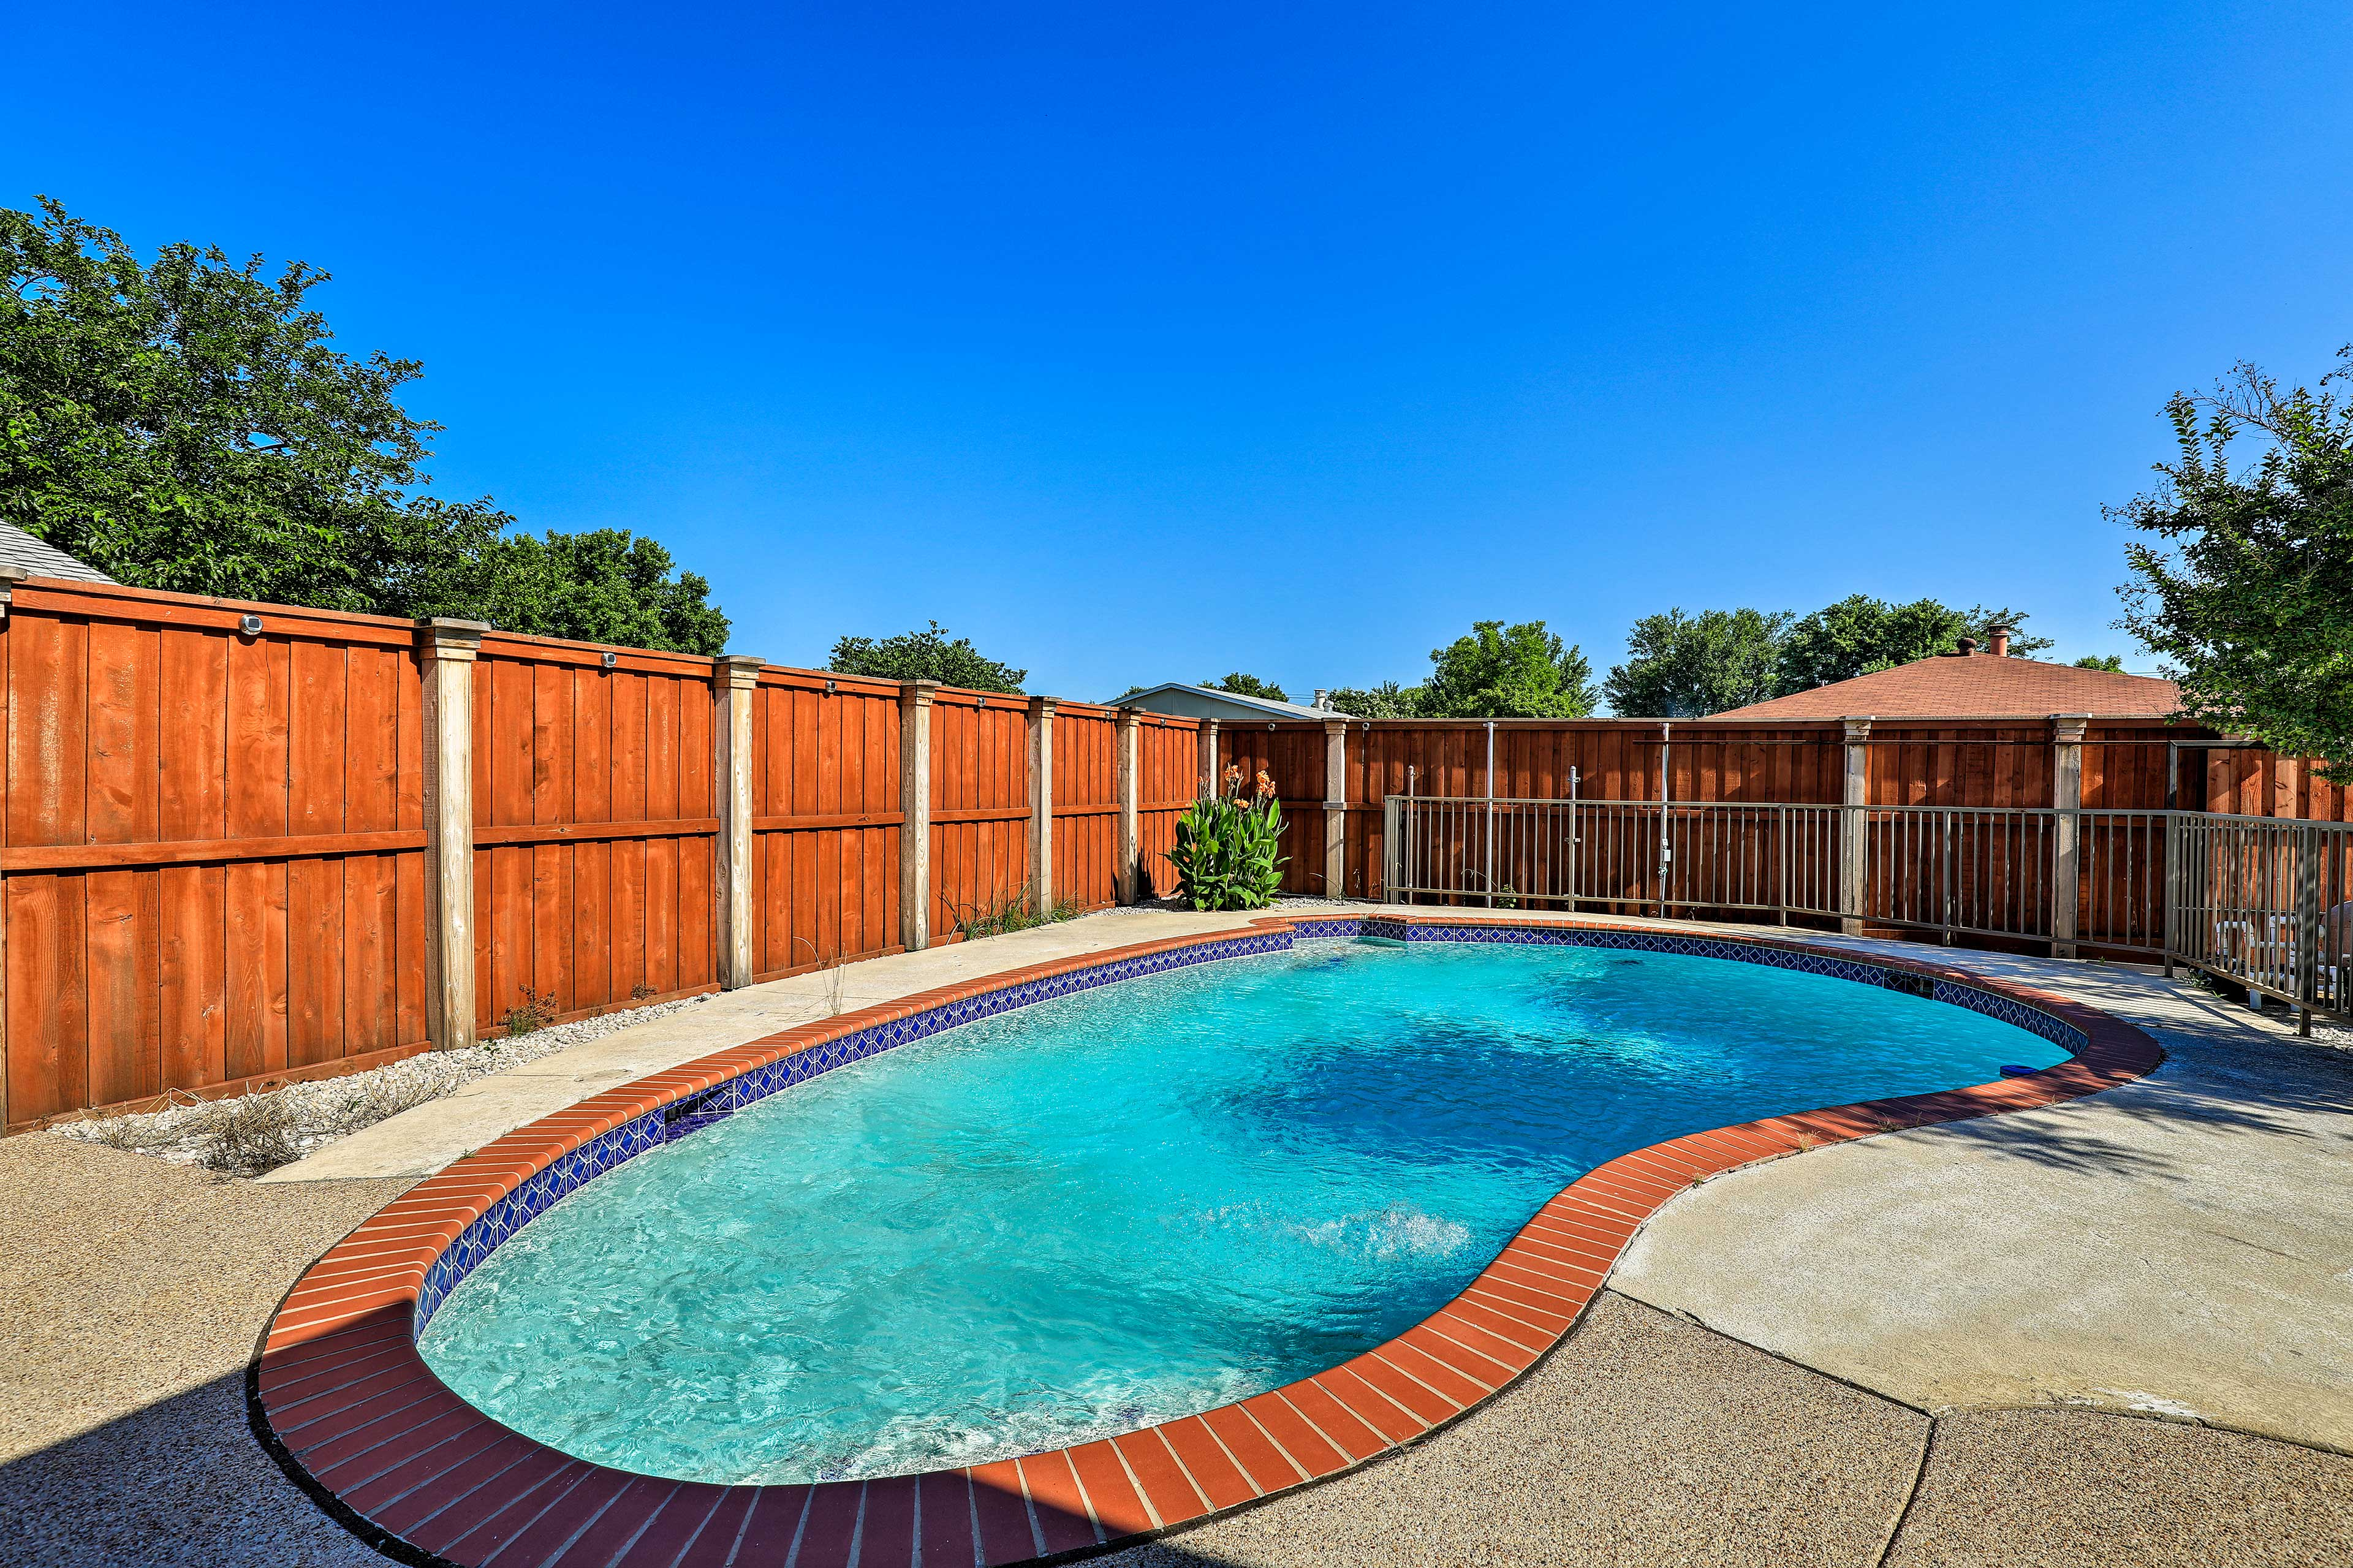 Keep cool in the Texas sun in this sparkling pool.